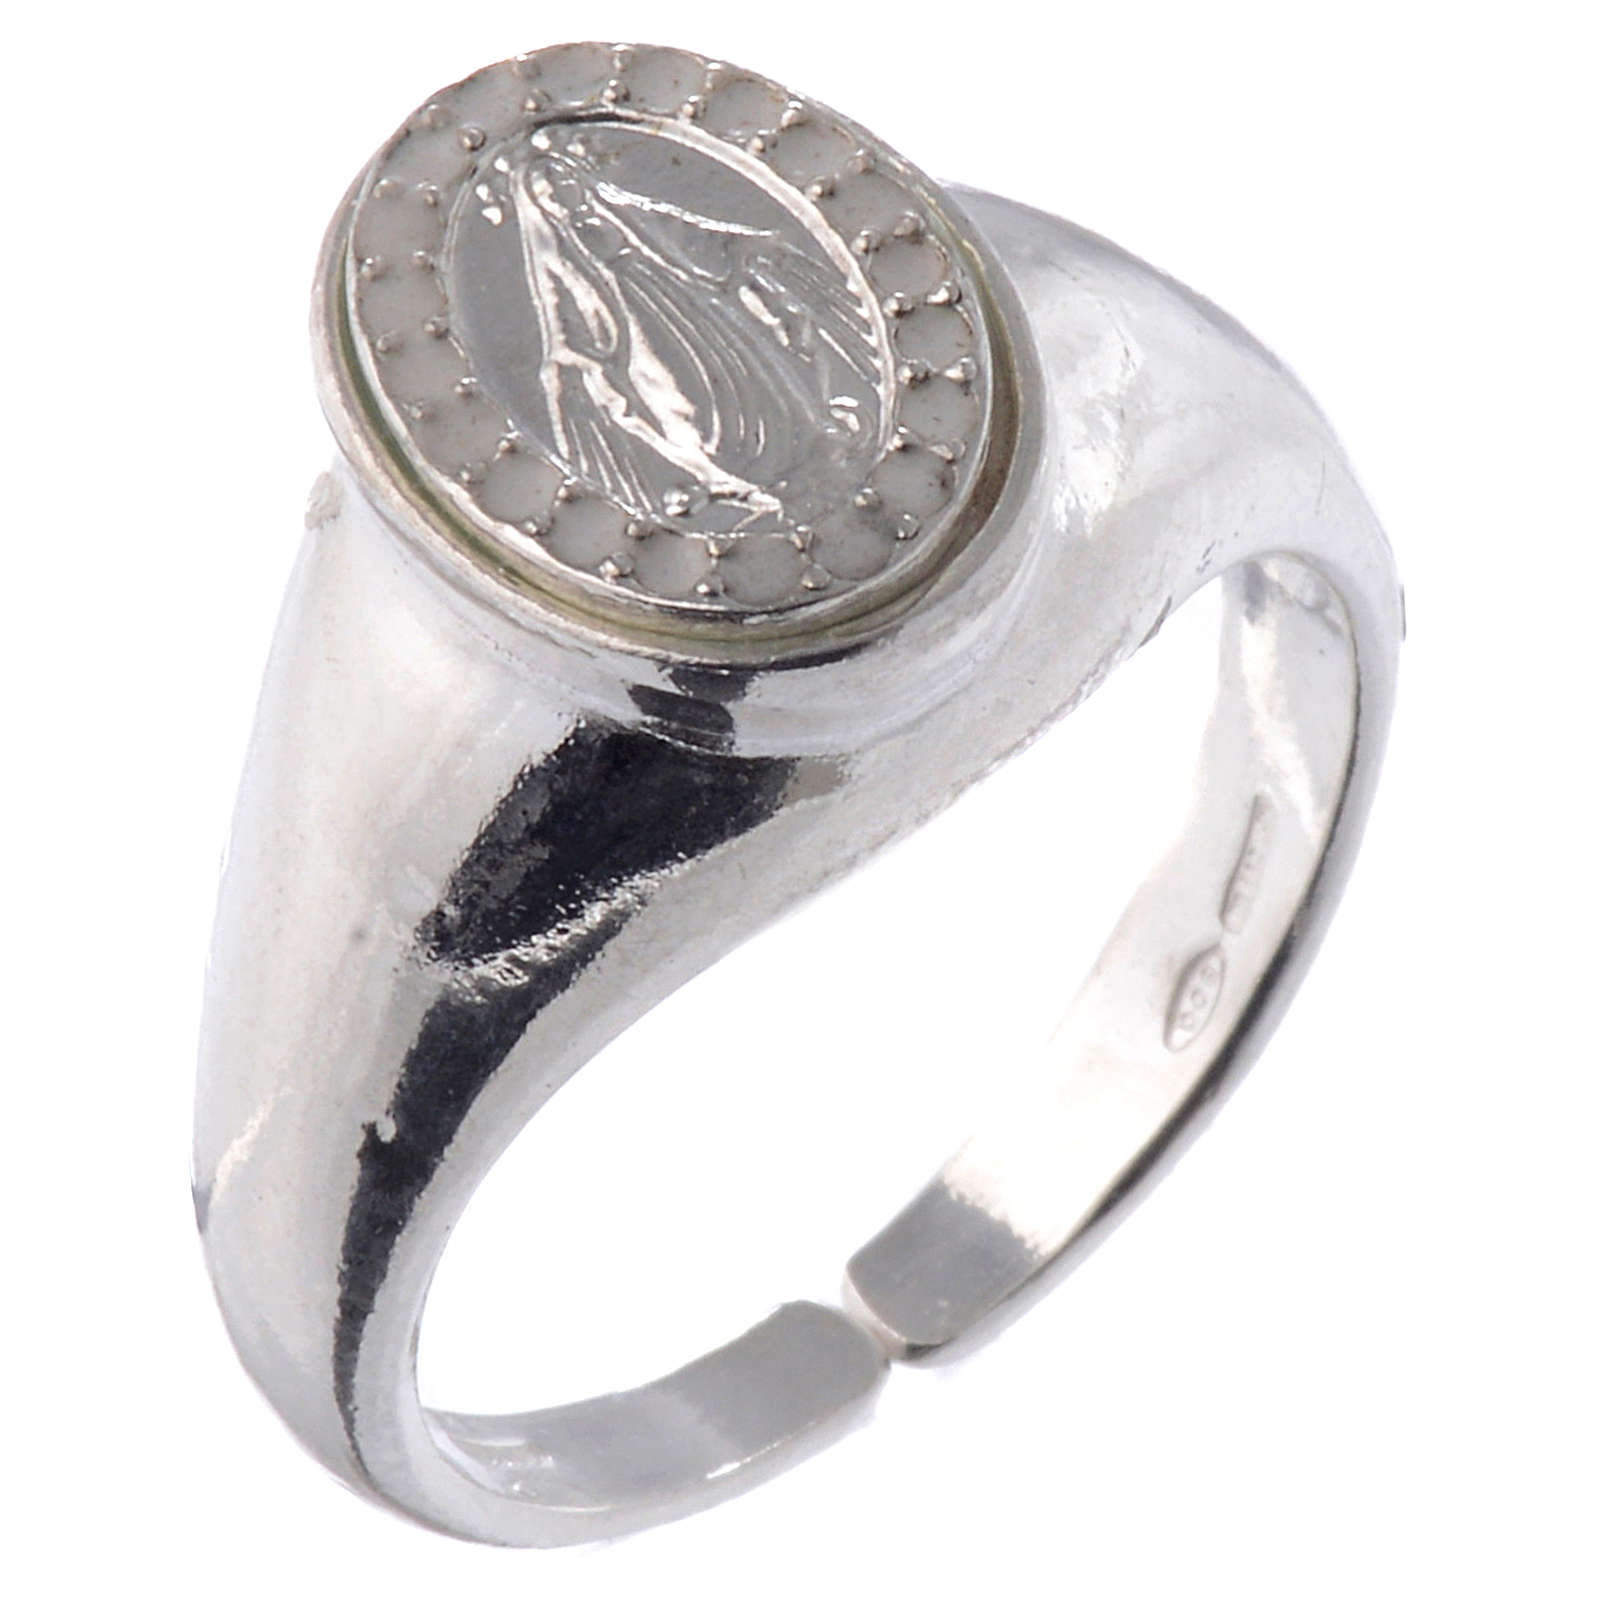 Ring in 925 silver with Miraculous Medal, white and adjustable 3